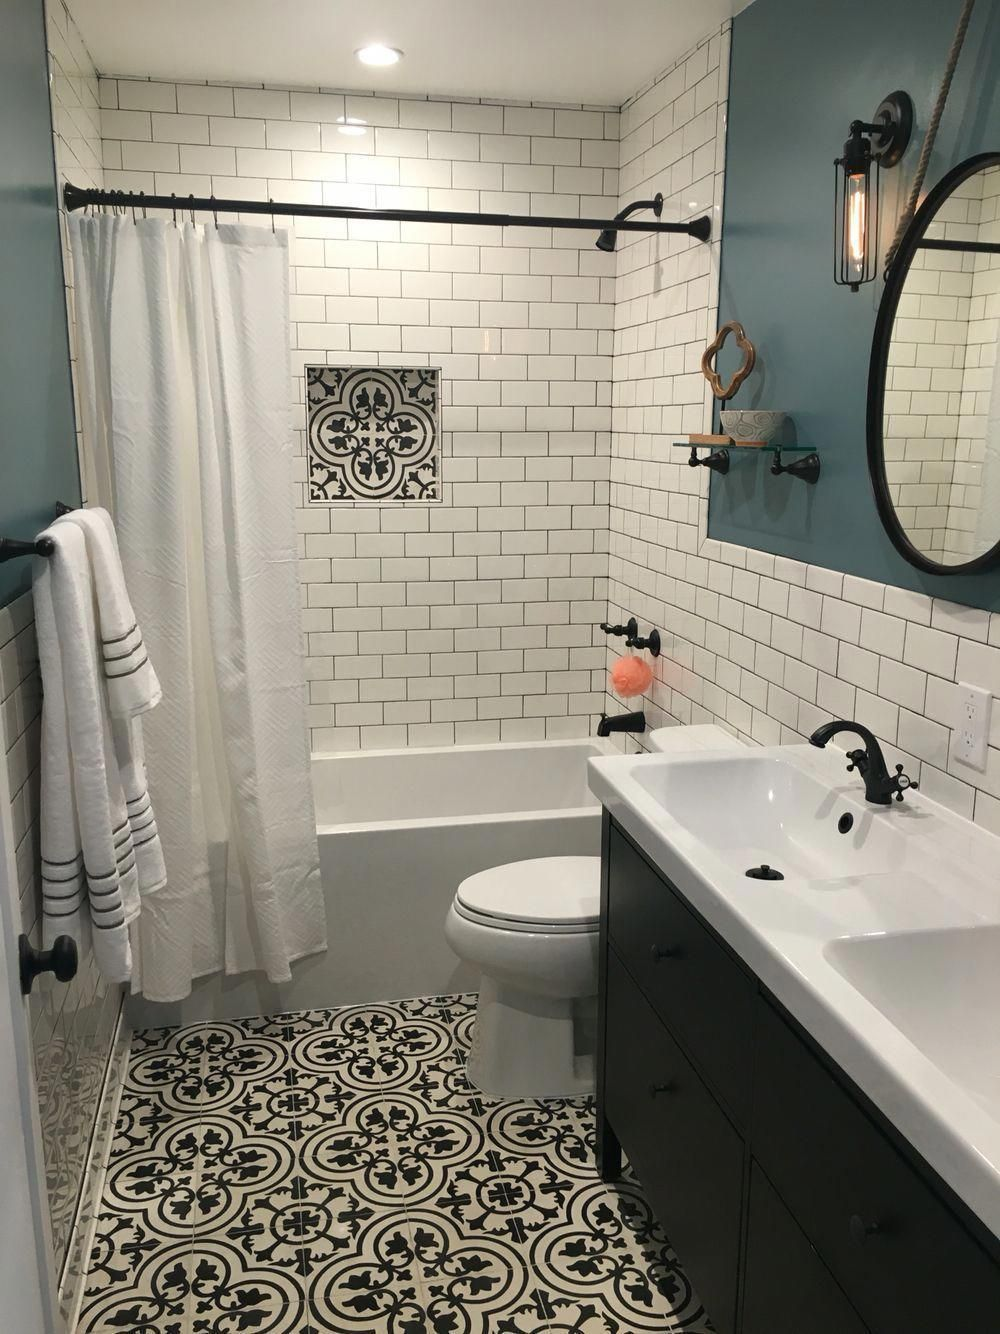 Most Popular Small Bathroom Remodel Ideas On A Budget In 2018 This Beautiful Look Was Created Bathroom Remodel Master Small Bathroom Remodel Bathrooms Remodel